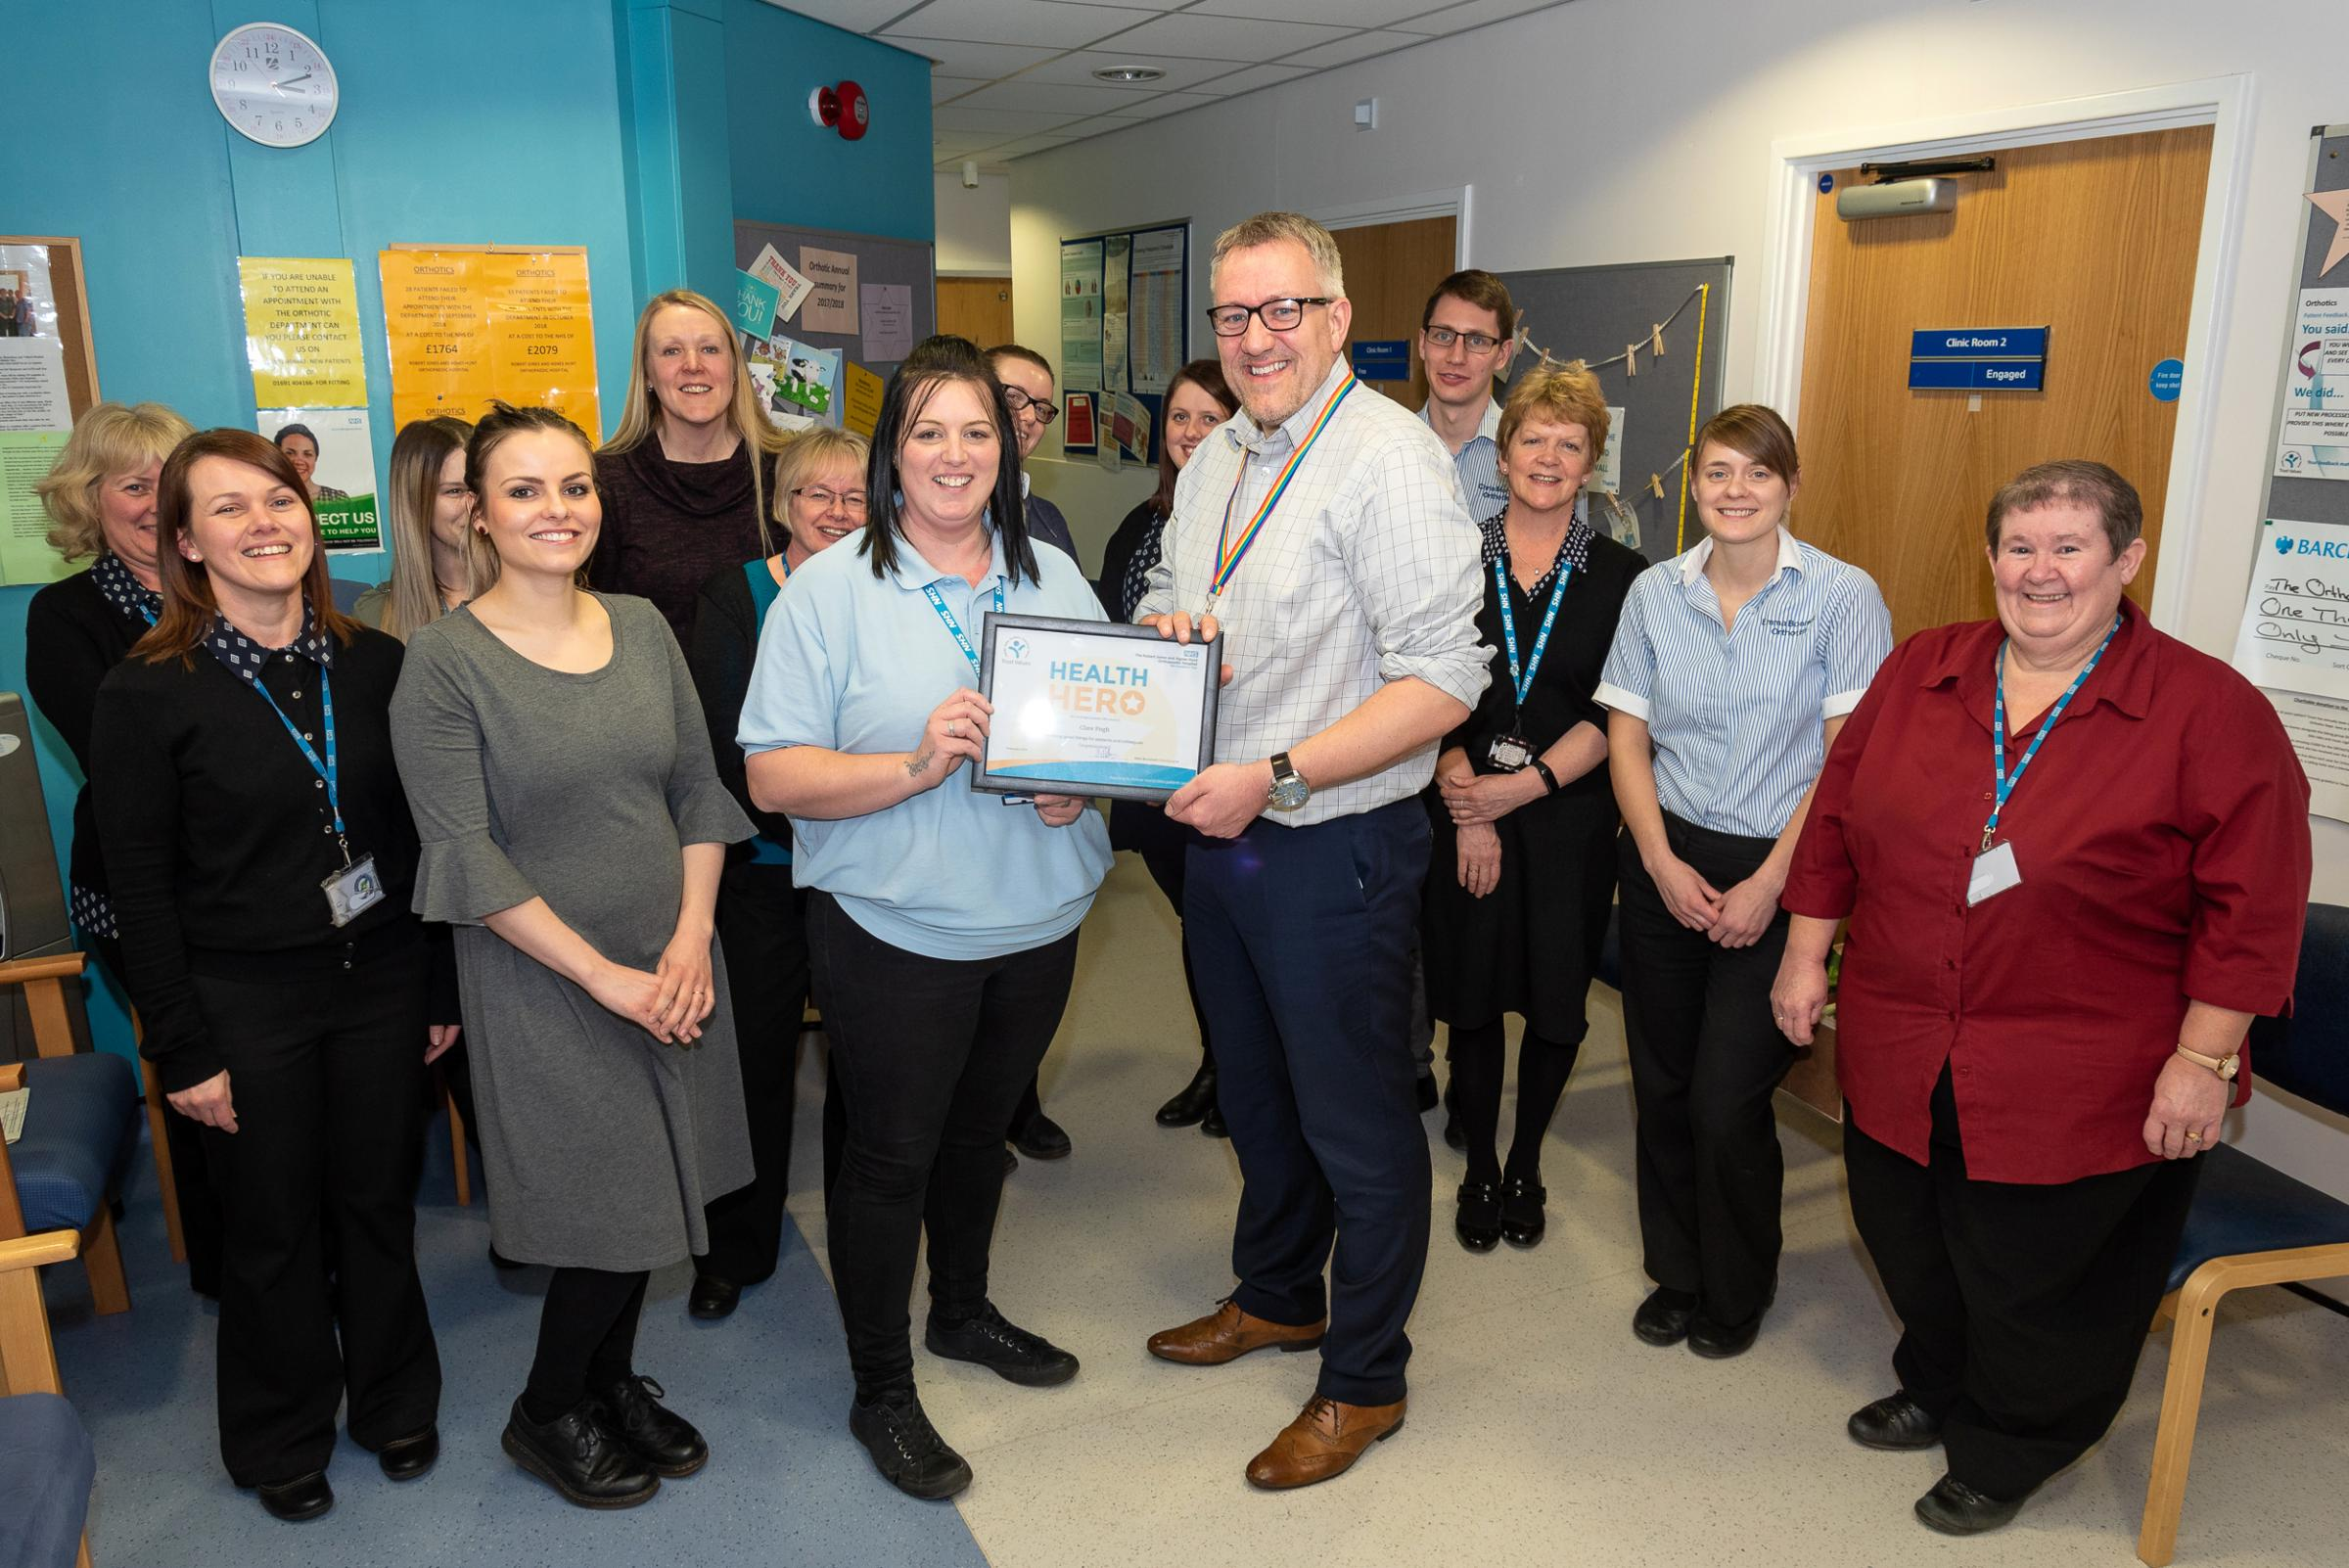 Chief executive Mark Brandreth presenting orthotic assistant Clare Pugh with her Health Hero Award alongside her colleagues in Orthotics.